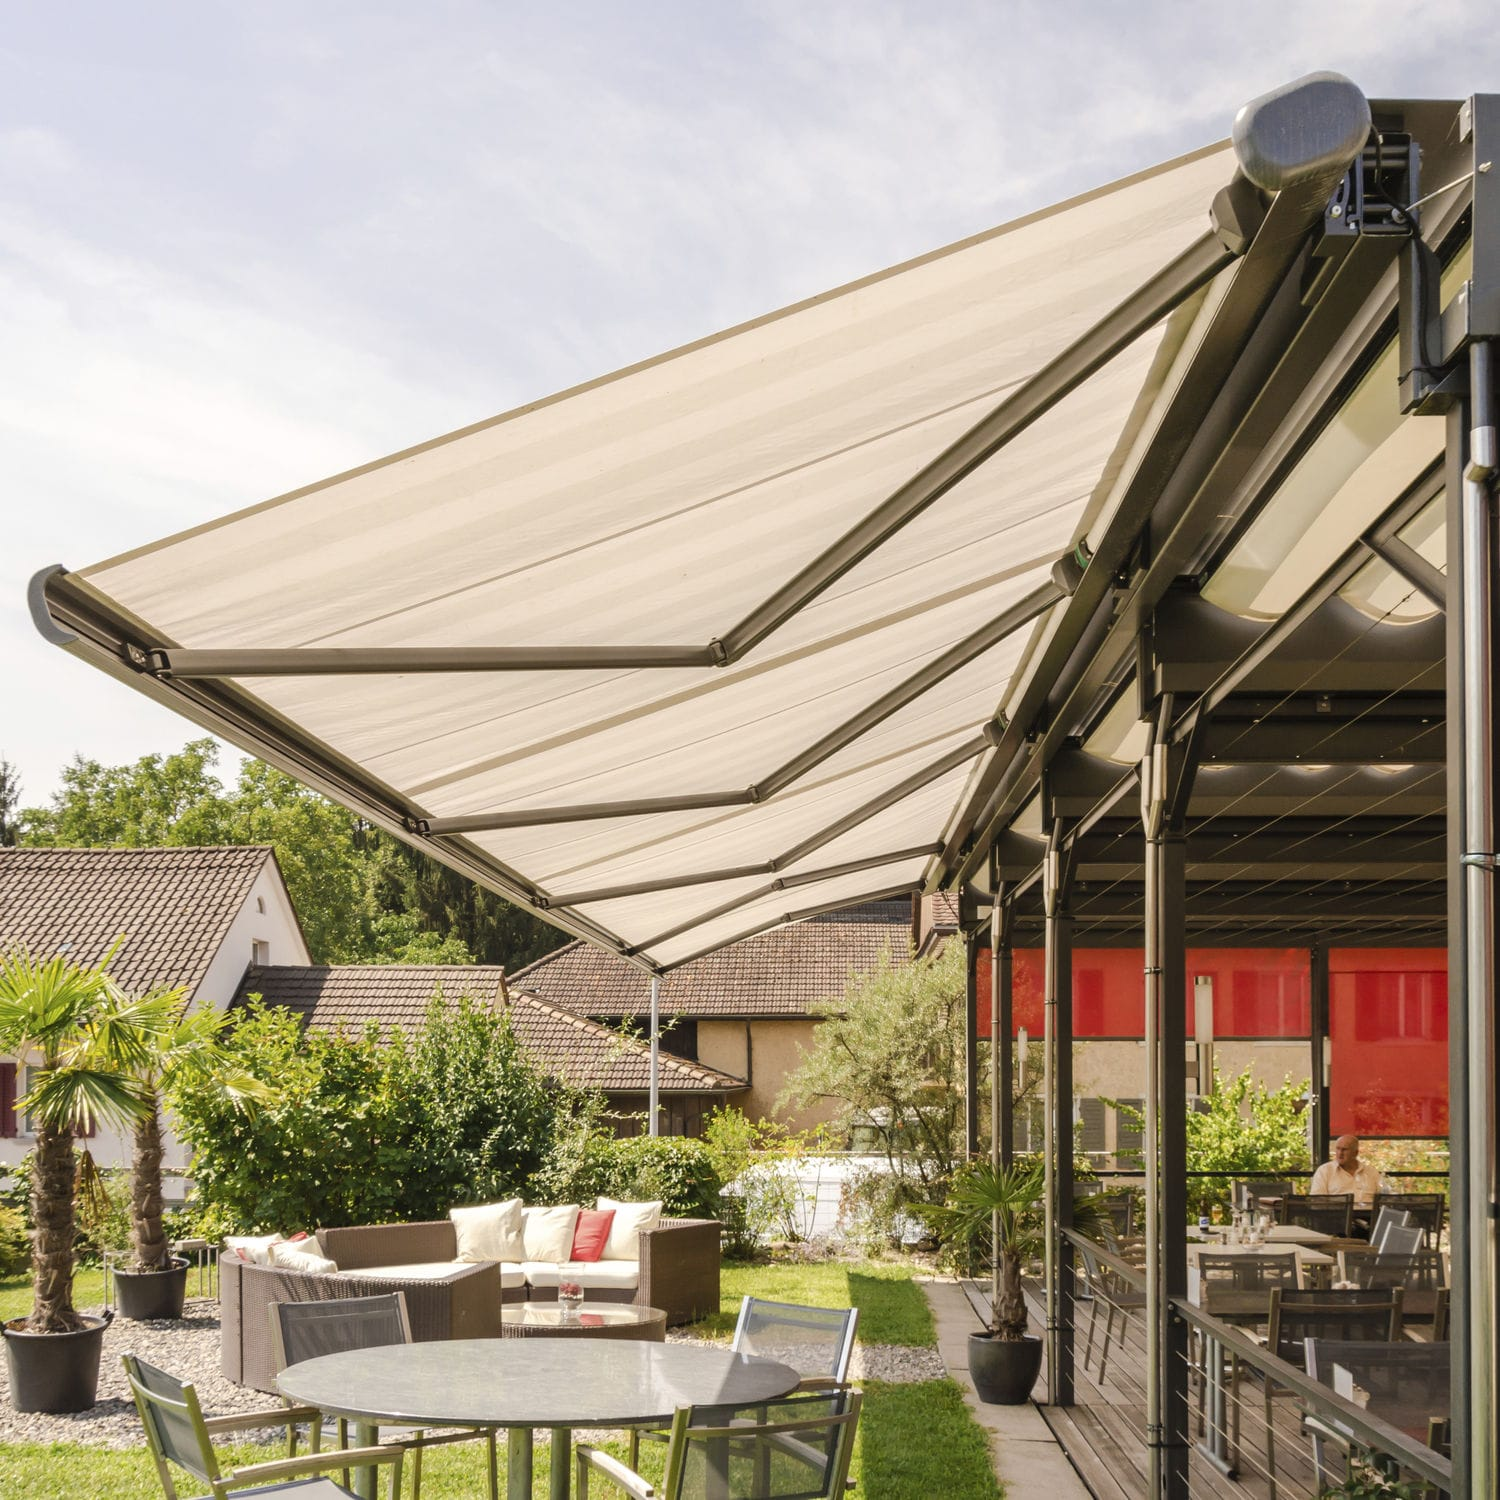 sun bat arm group components us folding sole pitch awnings products lateral awning braccio estensibile r tende